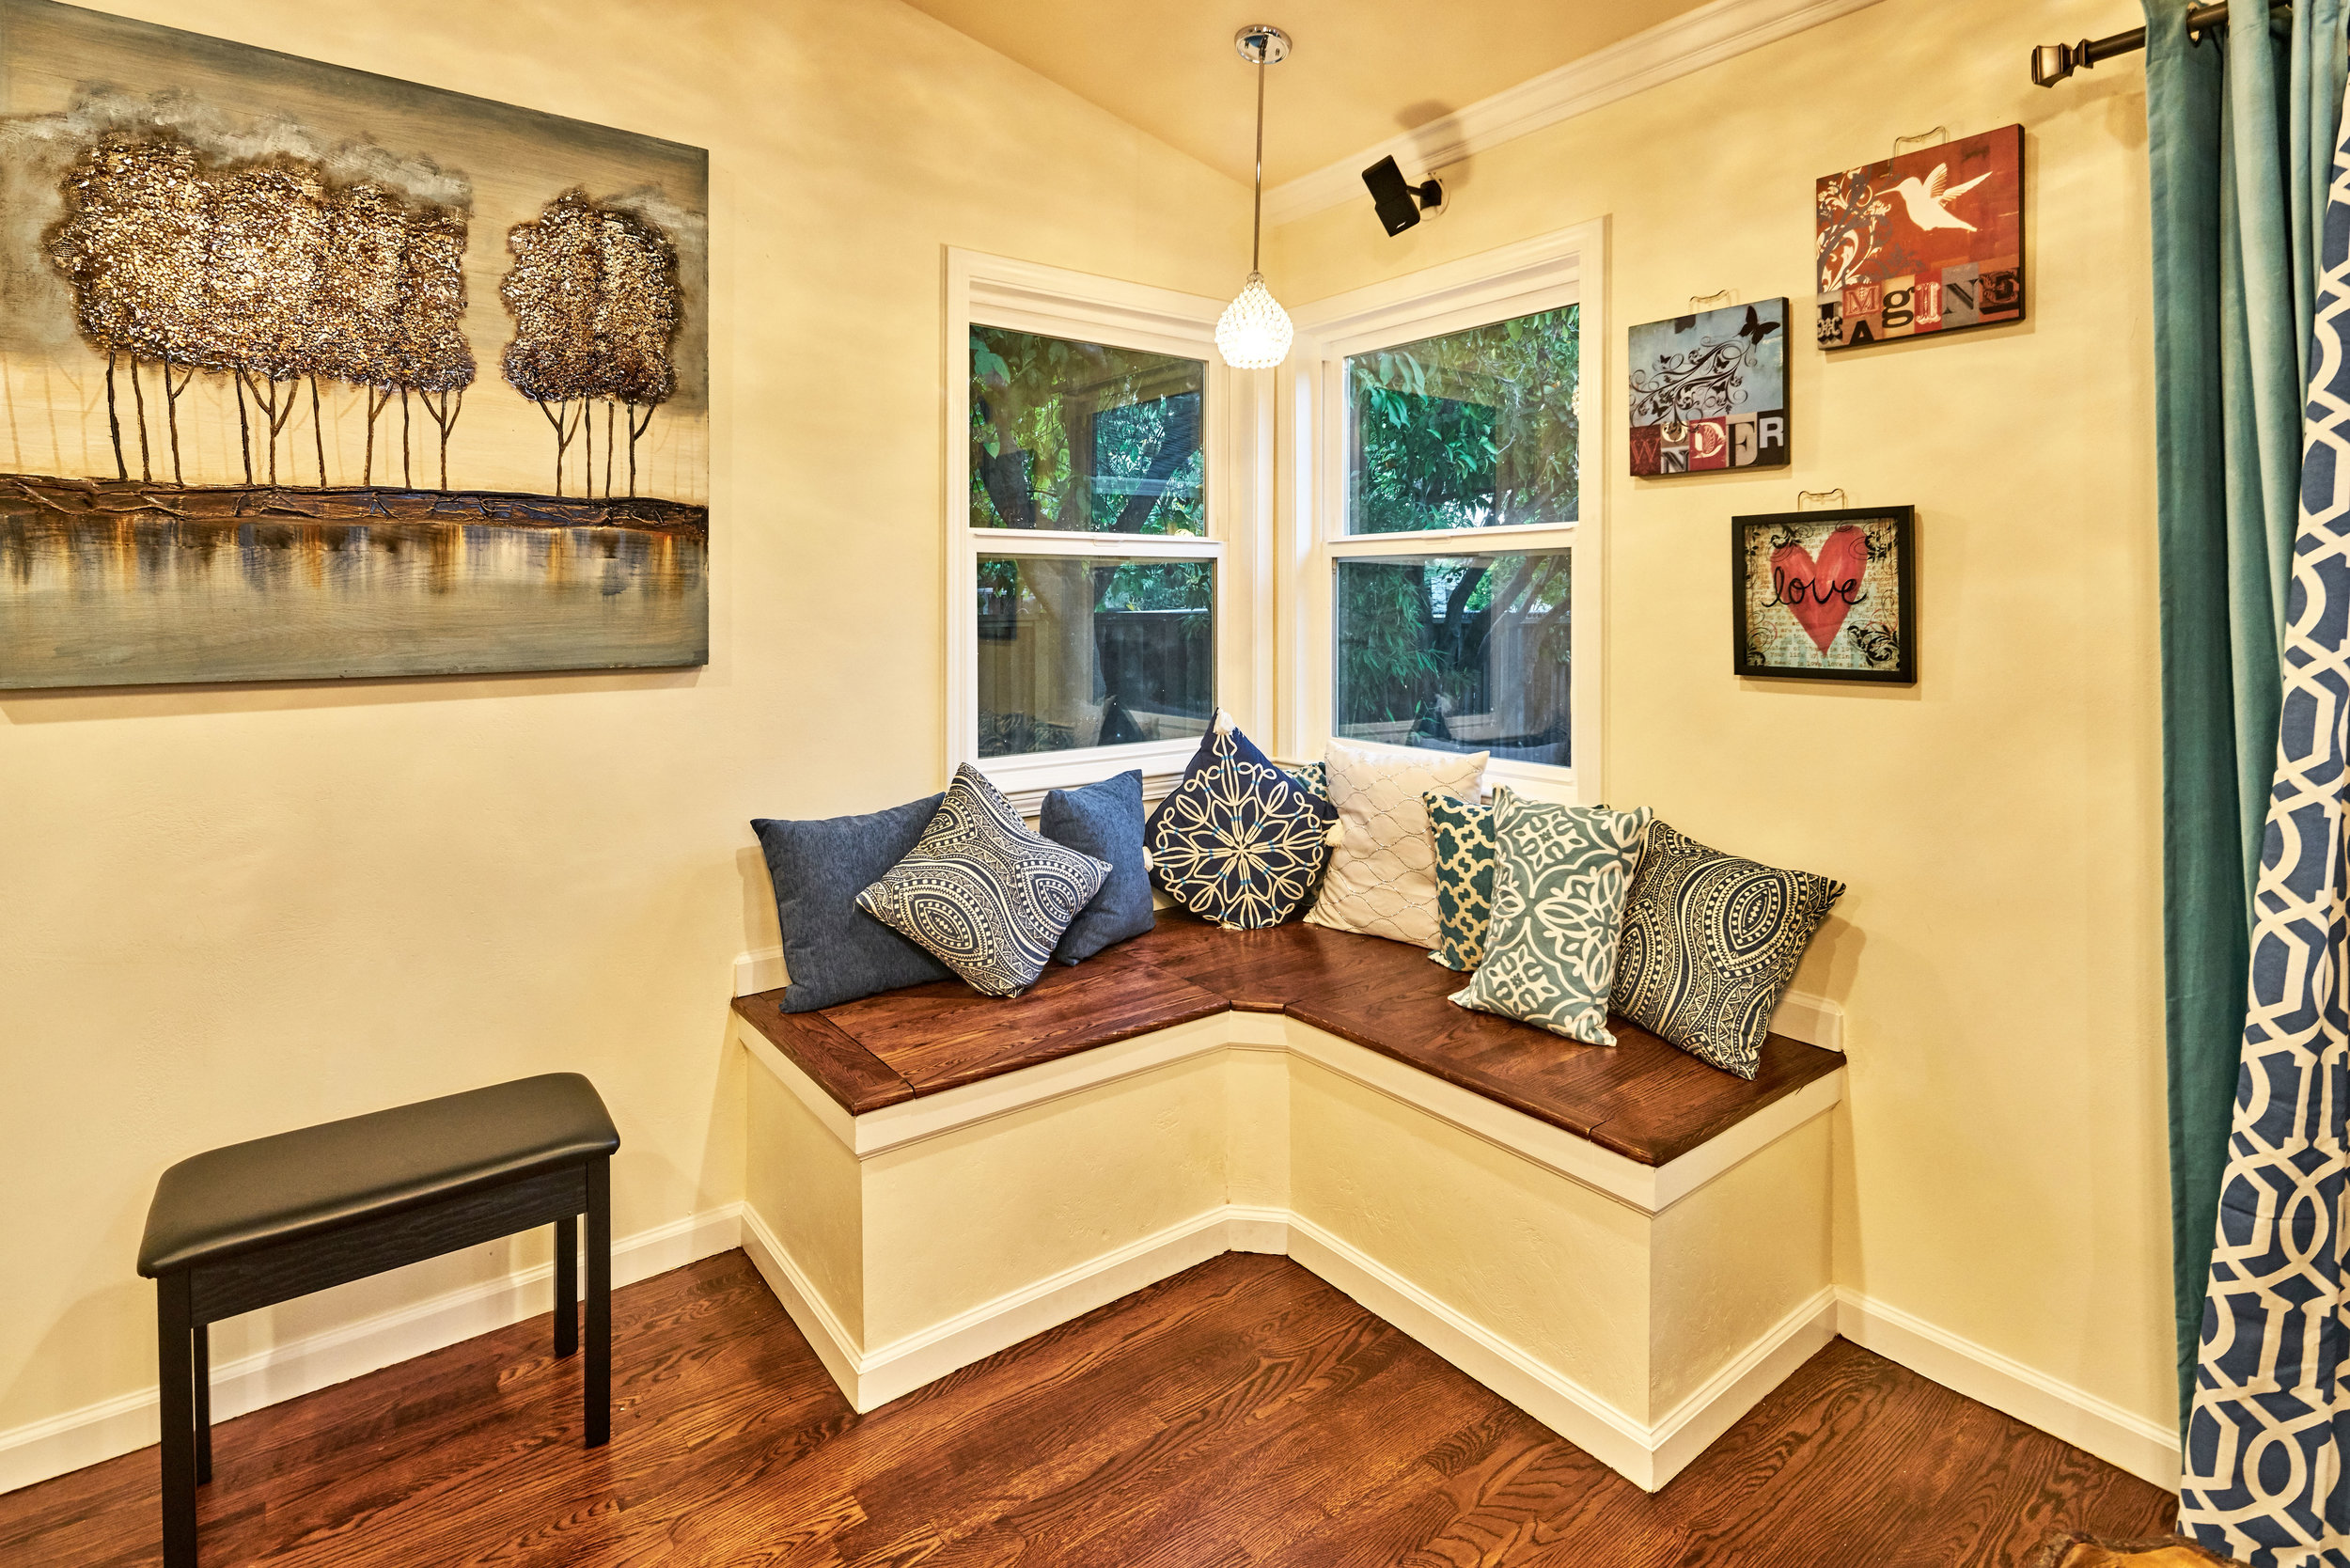 CORNER WINDOWS TO ACCENTUATE BENCH NOOK